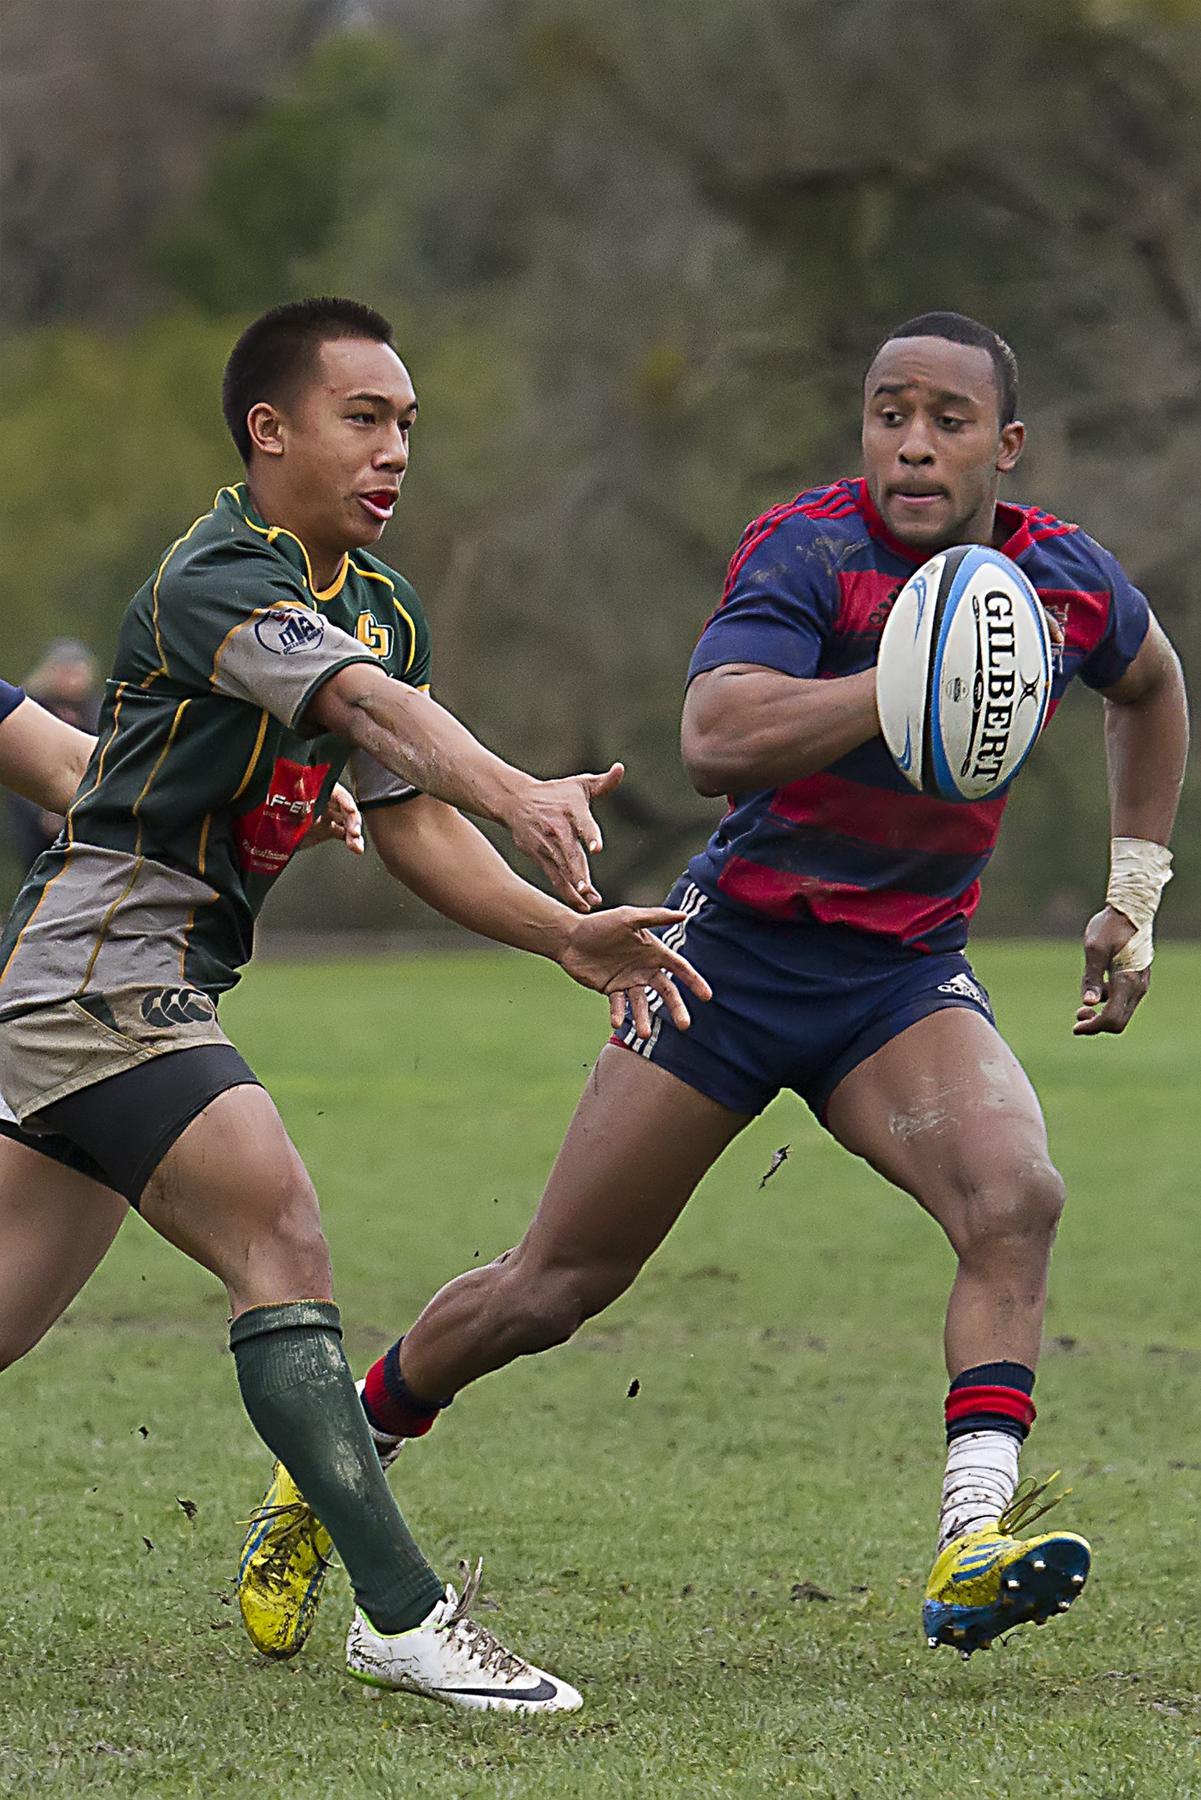 Men's Rugby vs. Cal Poly. March 1, 2014